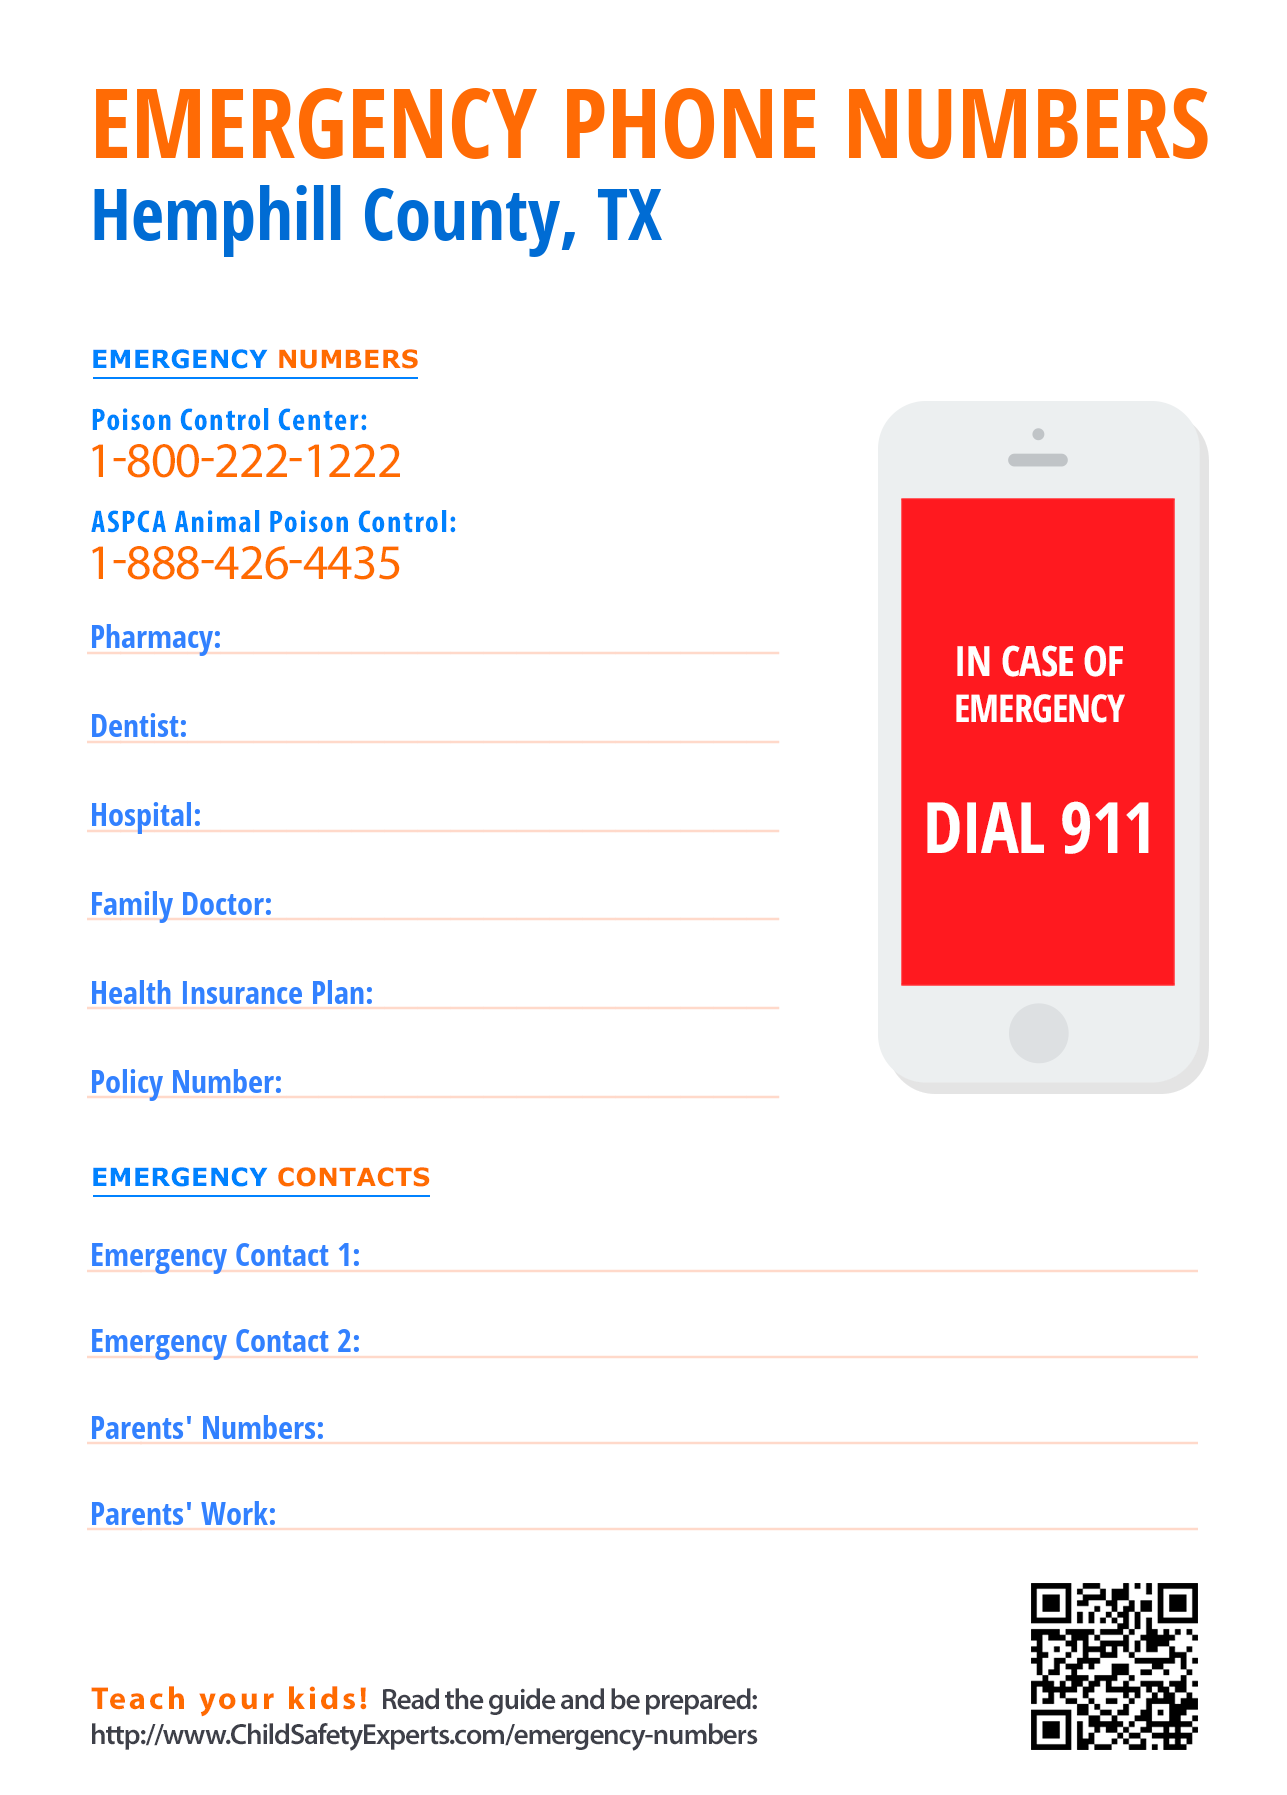 Important emergency phone numbers in Hemphill County, Texas